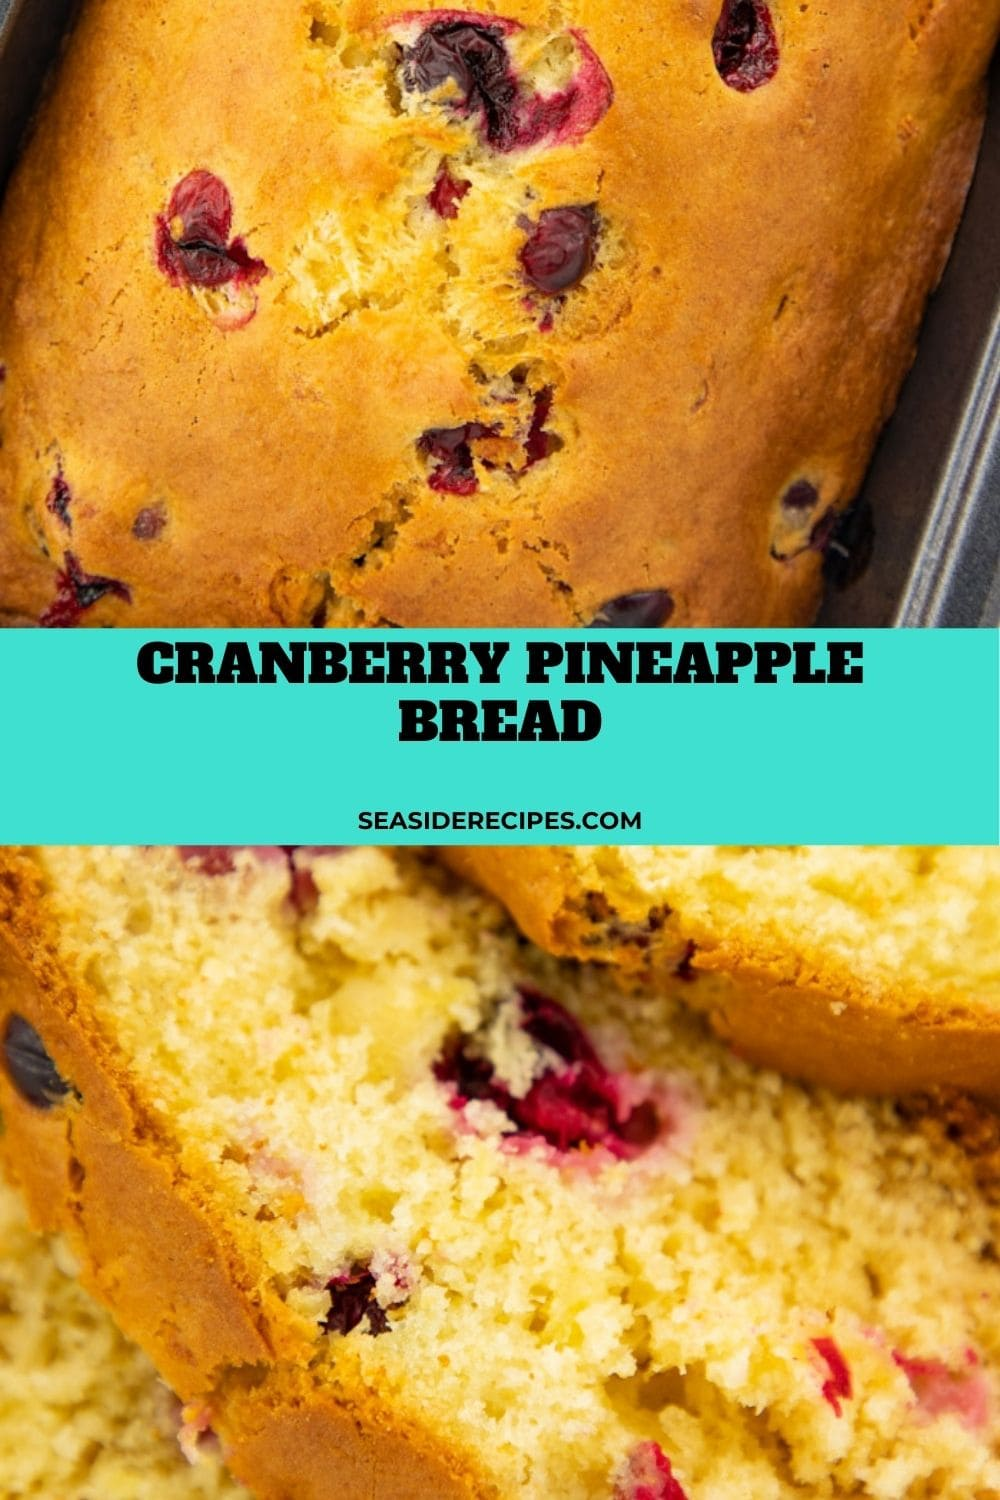 Cranberry Pineapple Bread loaf and sliced with text overlay